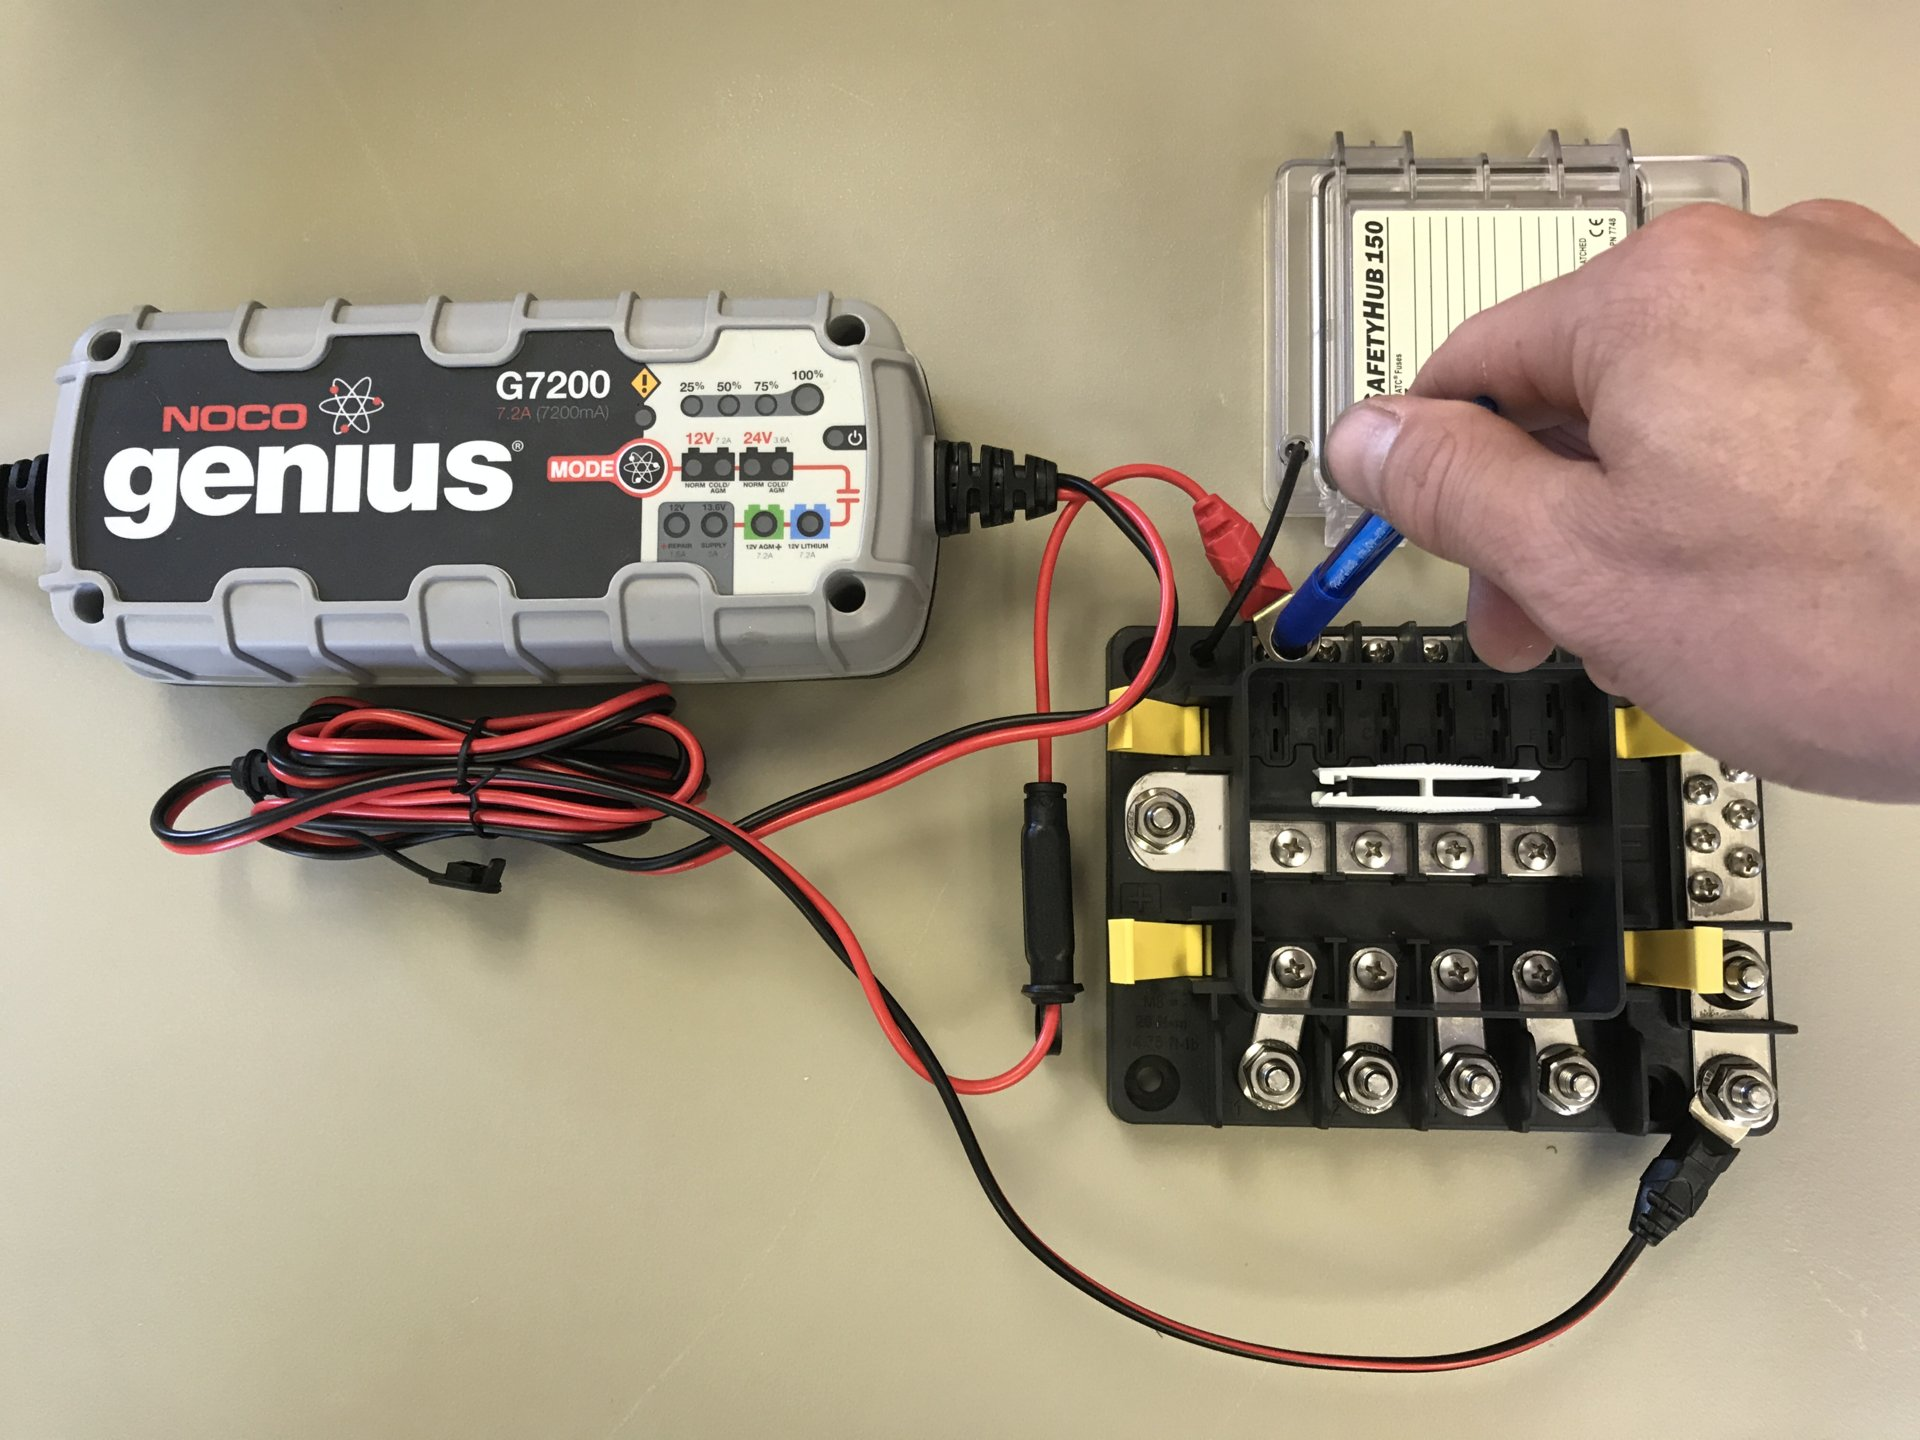 24v Float Maintenance Battery Charger Ih8mud Forum Noco Wiring Diagram Img 2670